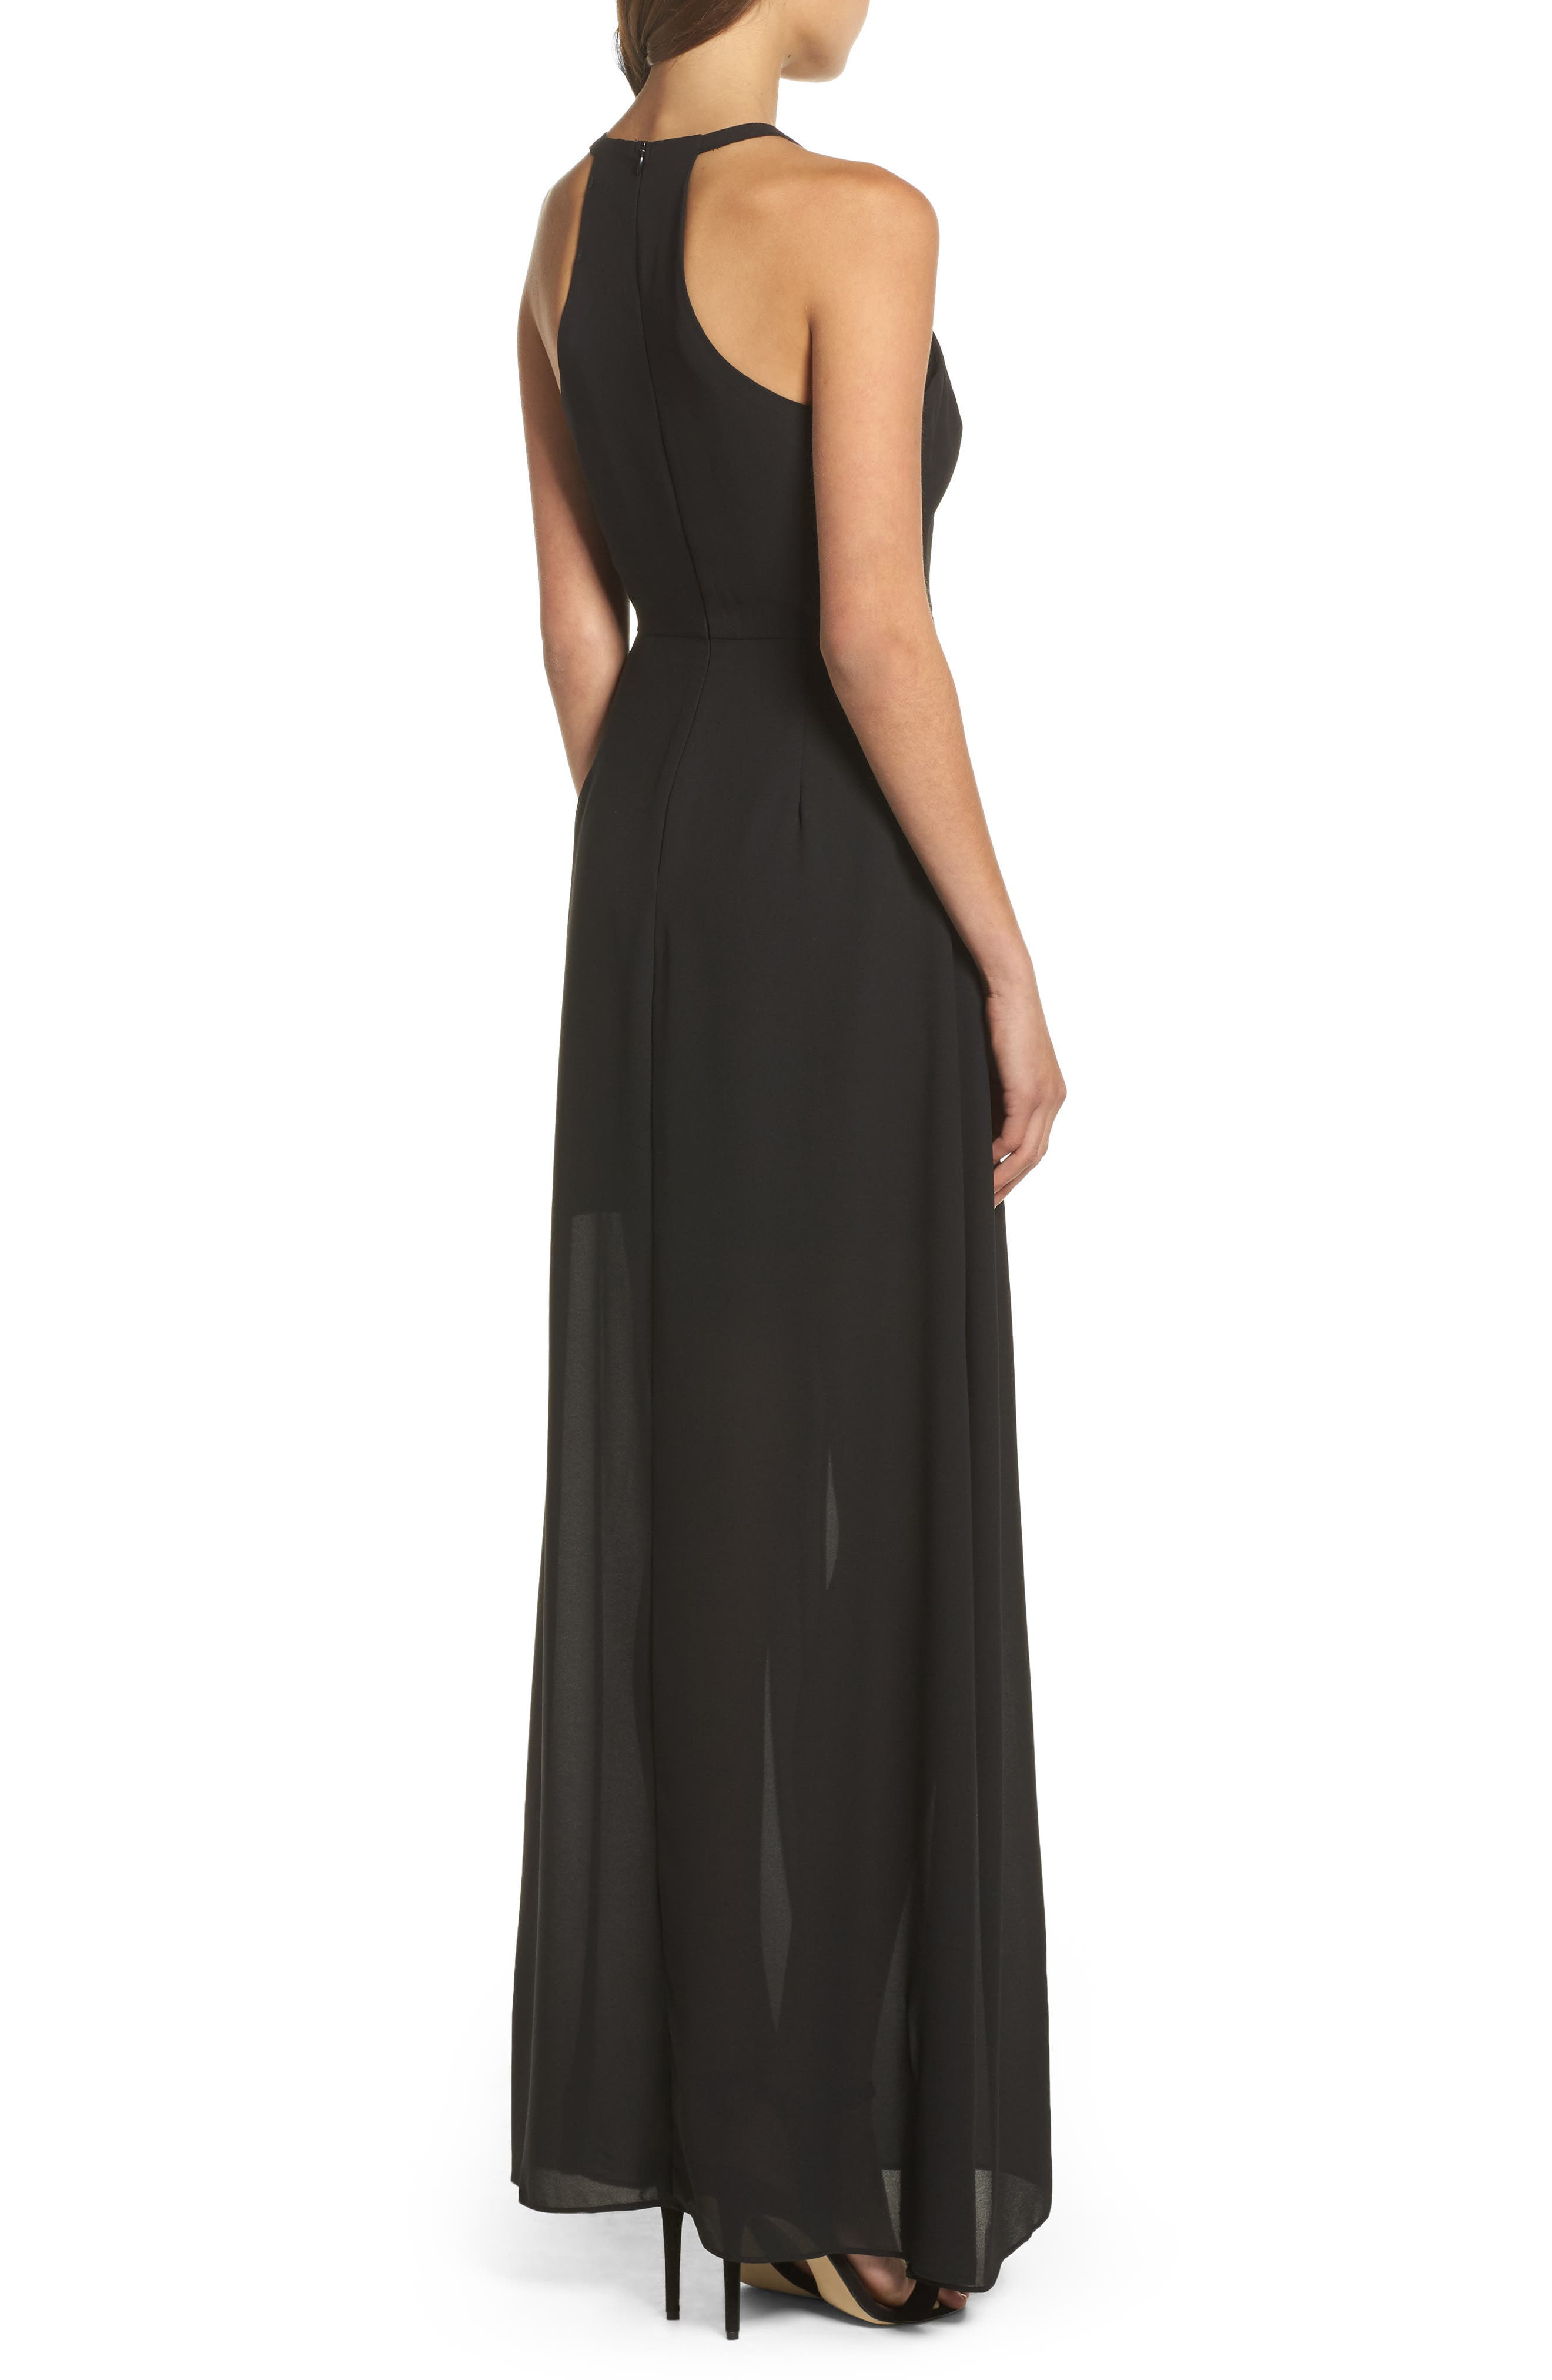 I Spy Maxi Dress,                             Alternate thumbnail 2, color,                             Black